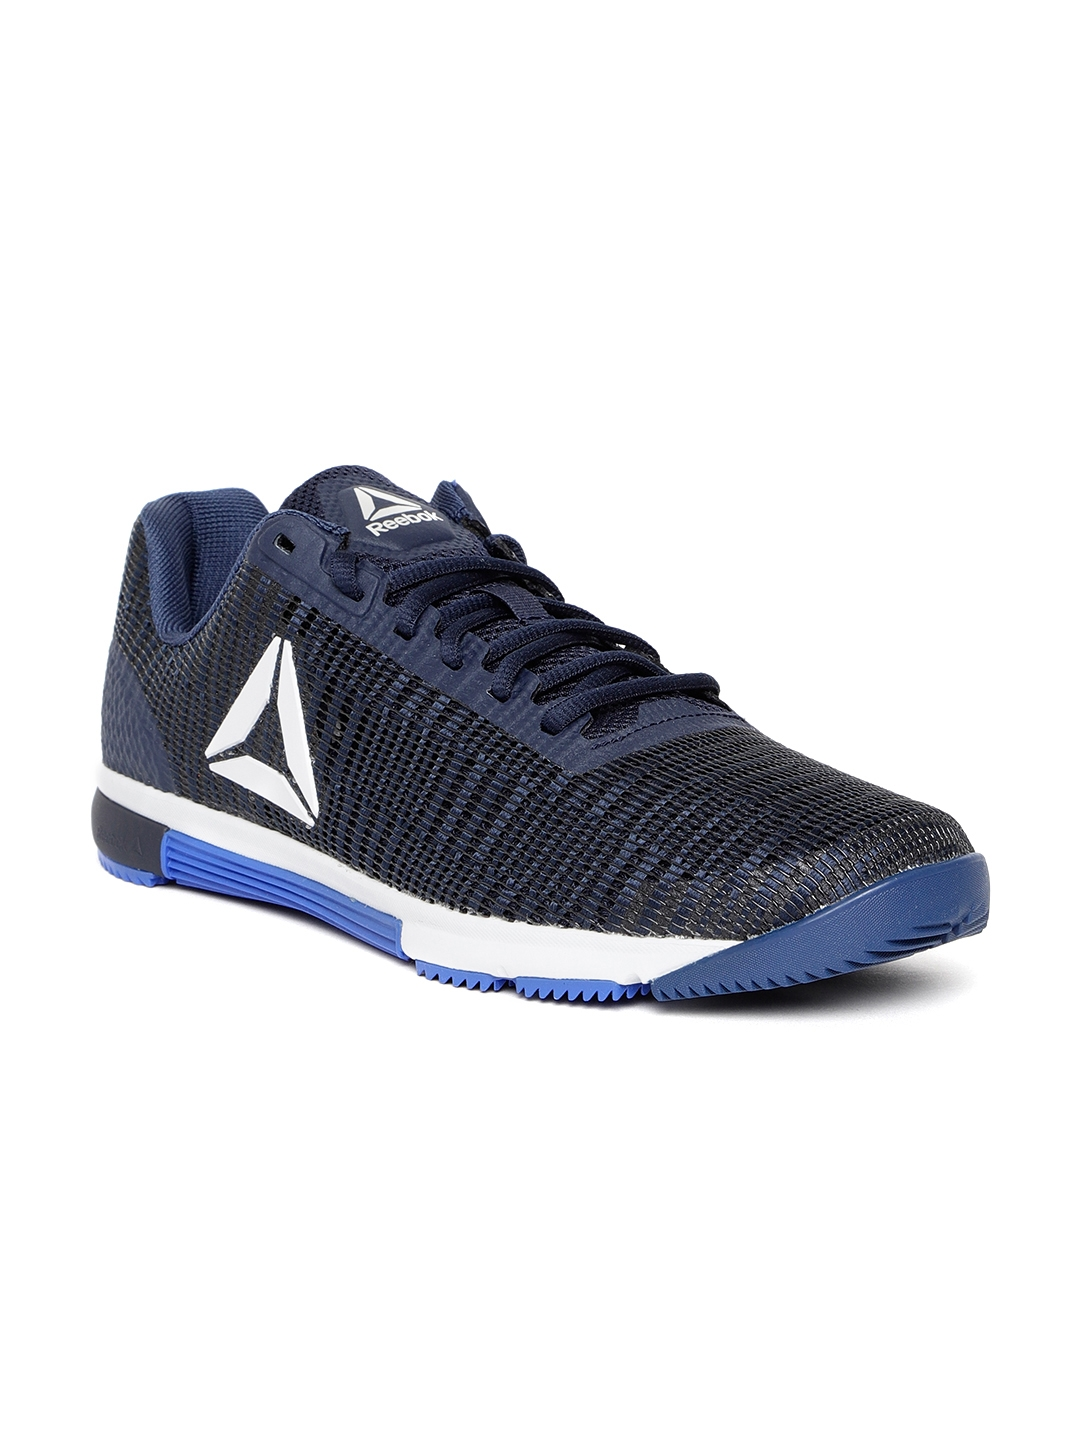 2dfdbacb403 Buy Reebok Men Navy Speed Flexweave Training Shoes - Sports Shoes ...